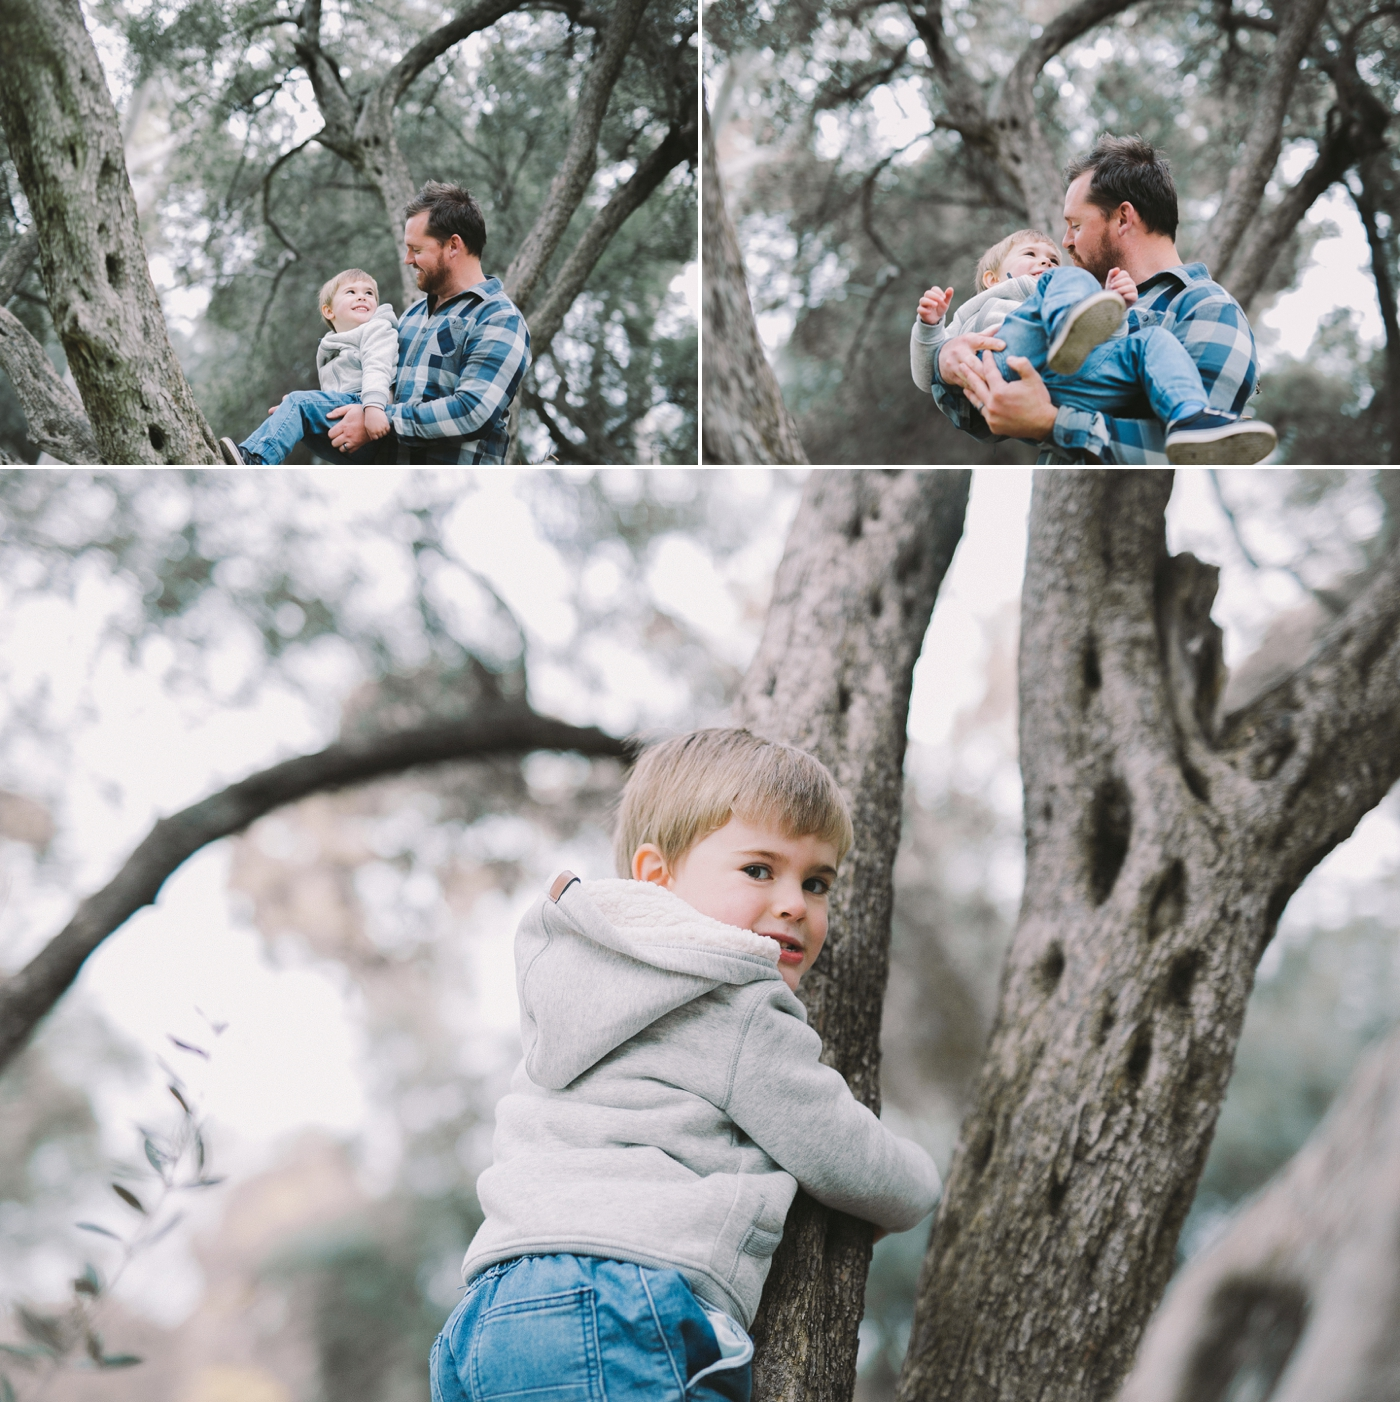 Neilson Family - Natural family photographer in Adelaide - Candid, beautiful, family photography - www.katherineschultzphotography.com 5